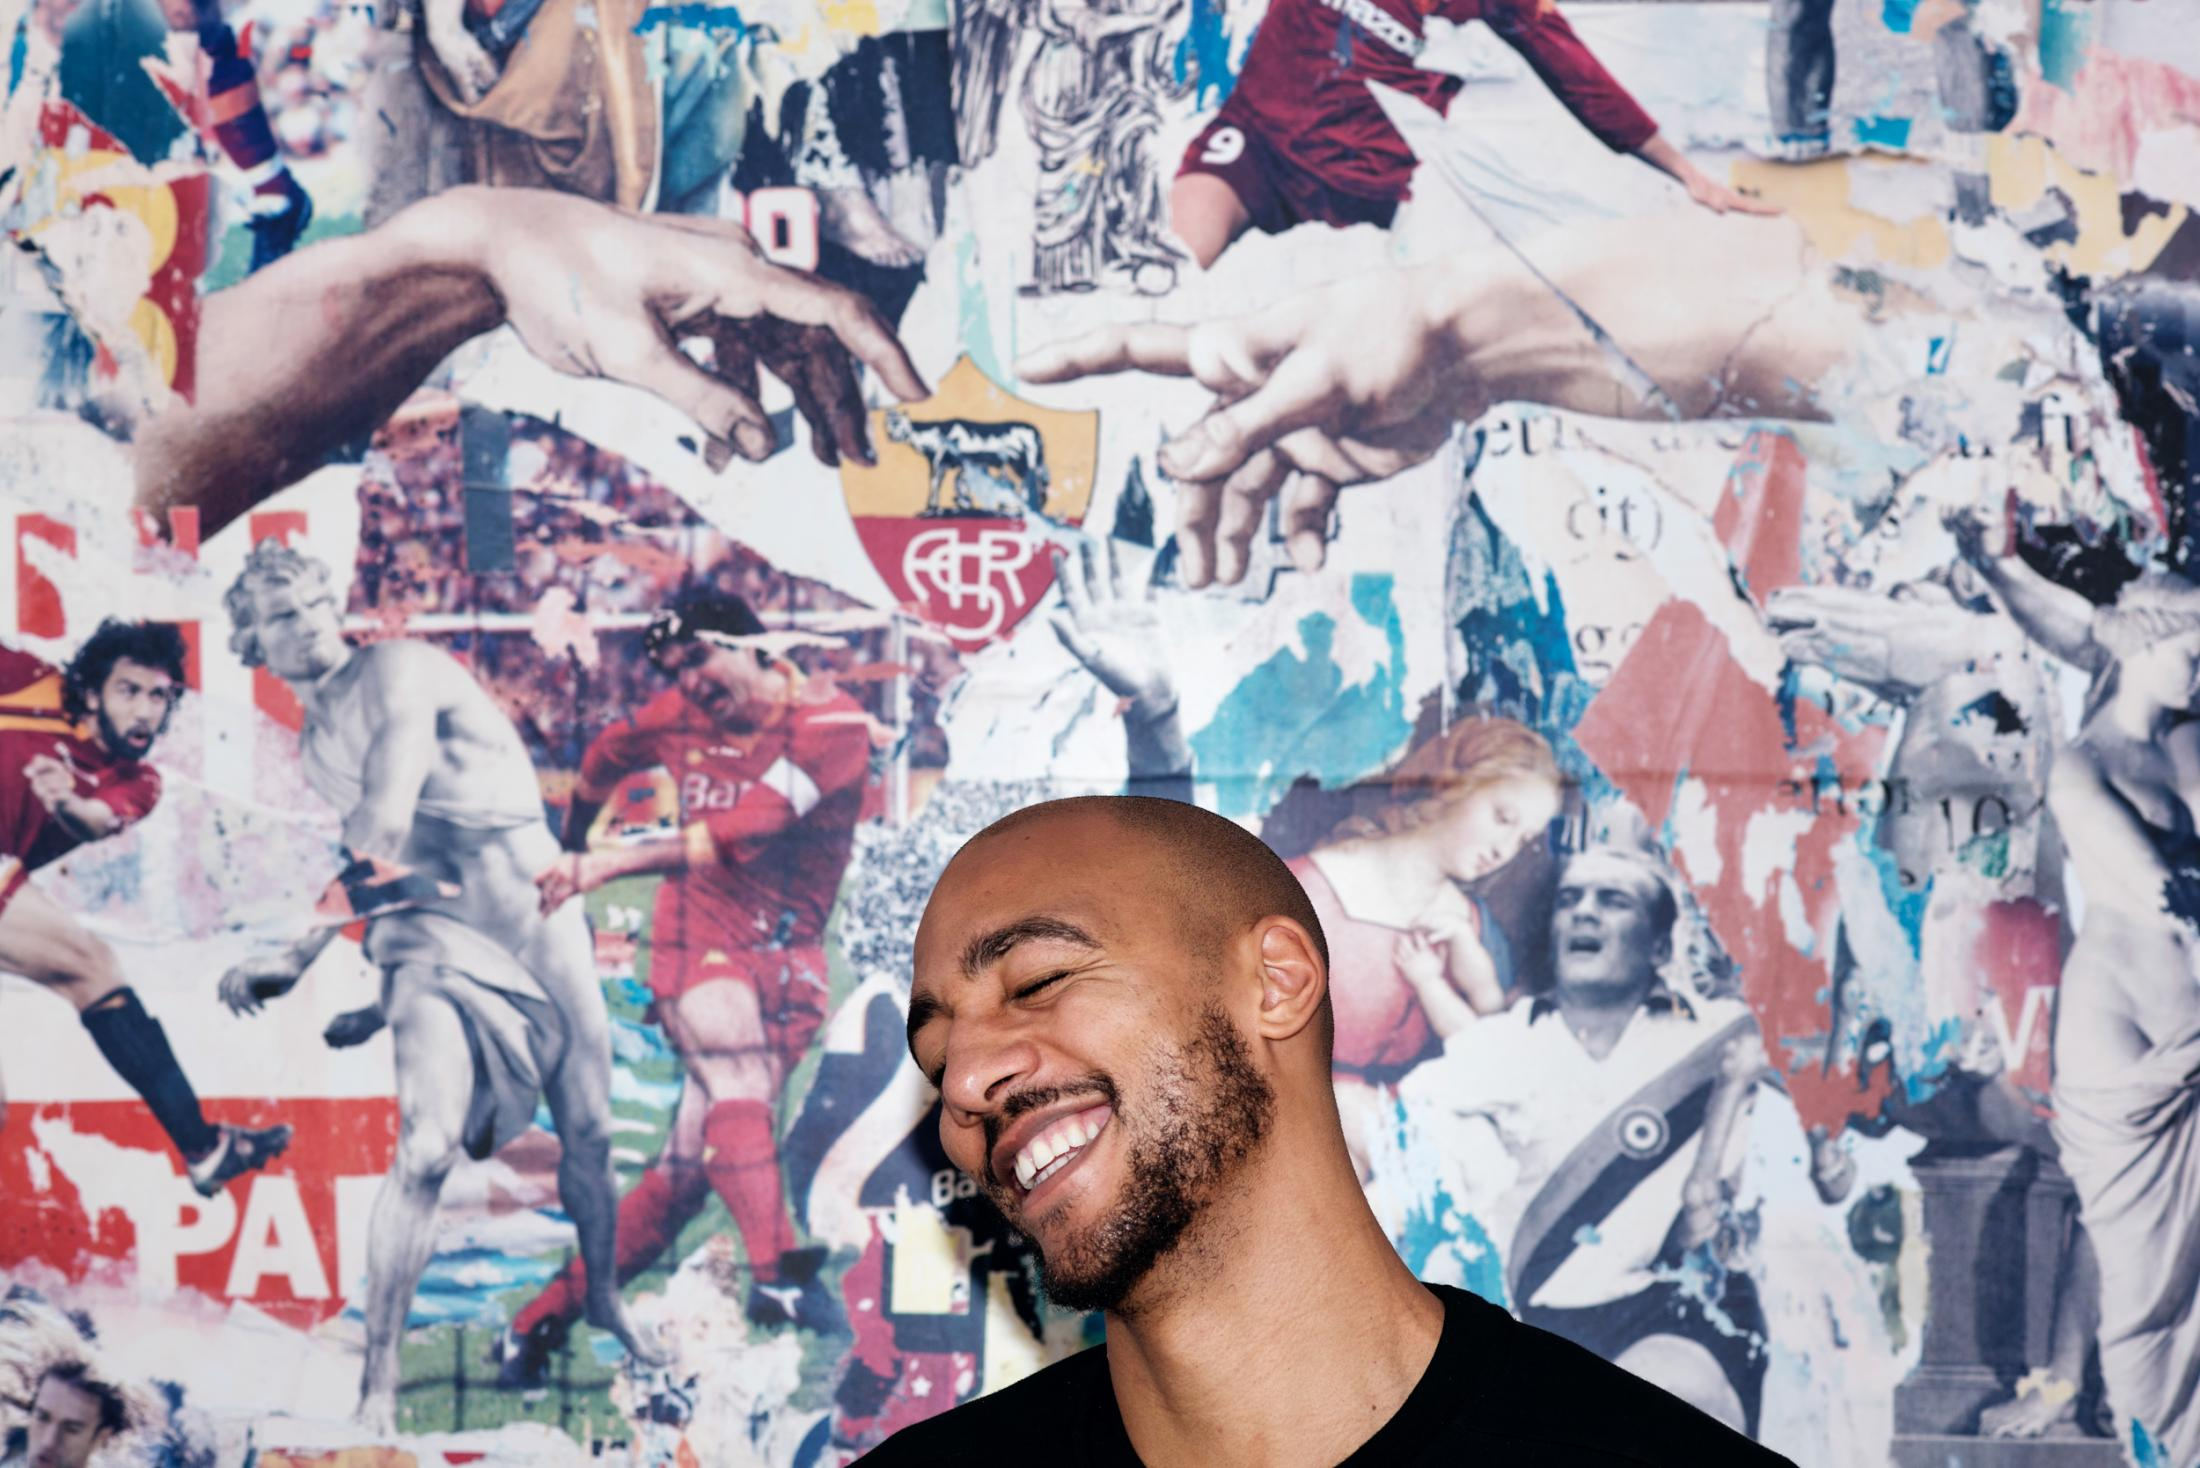 Steven Nzonzi, AS Roma Club. Commissioned by So Foot